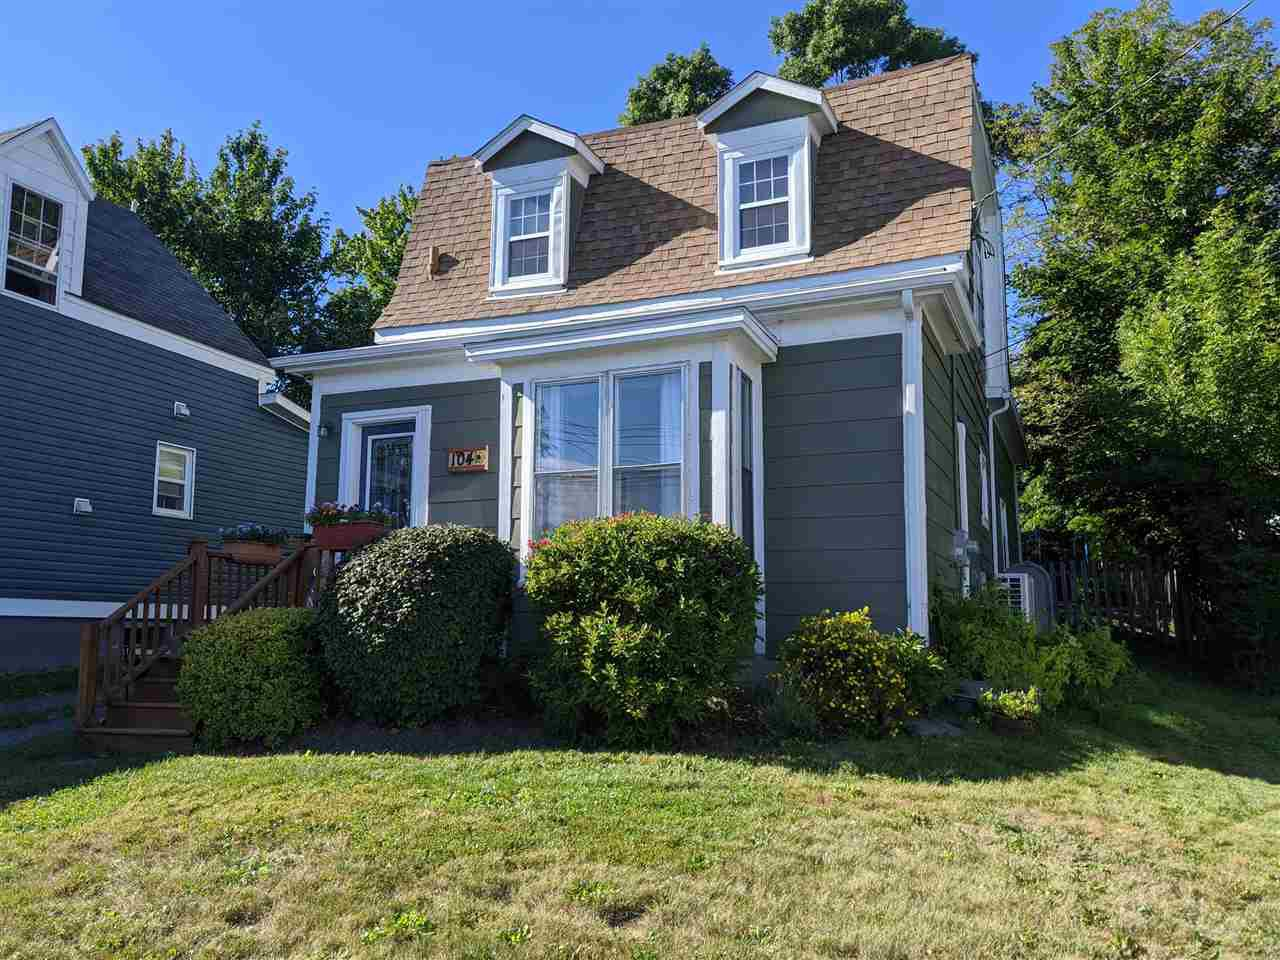 Main Photo: 104 Faulkland Street in Pictou: 107-Trenton,Westville,Pictou Residential for sale (Northern Region)  : MLS®# 202017722